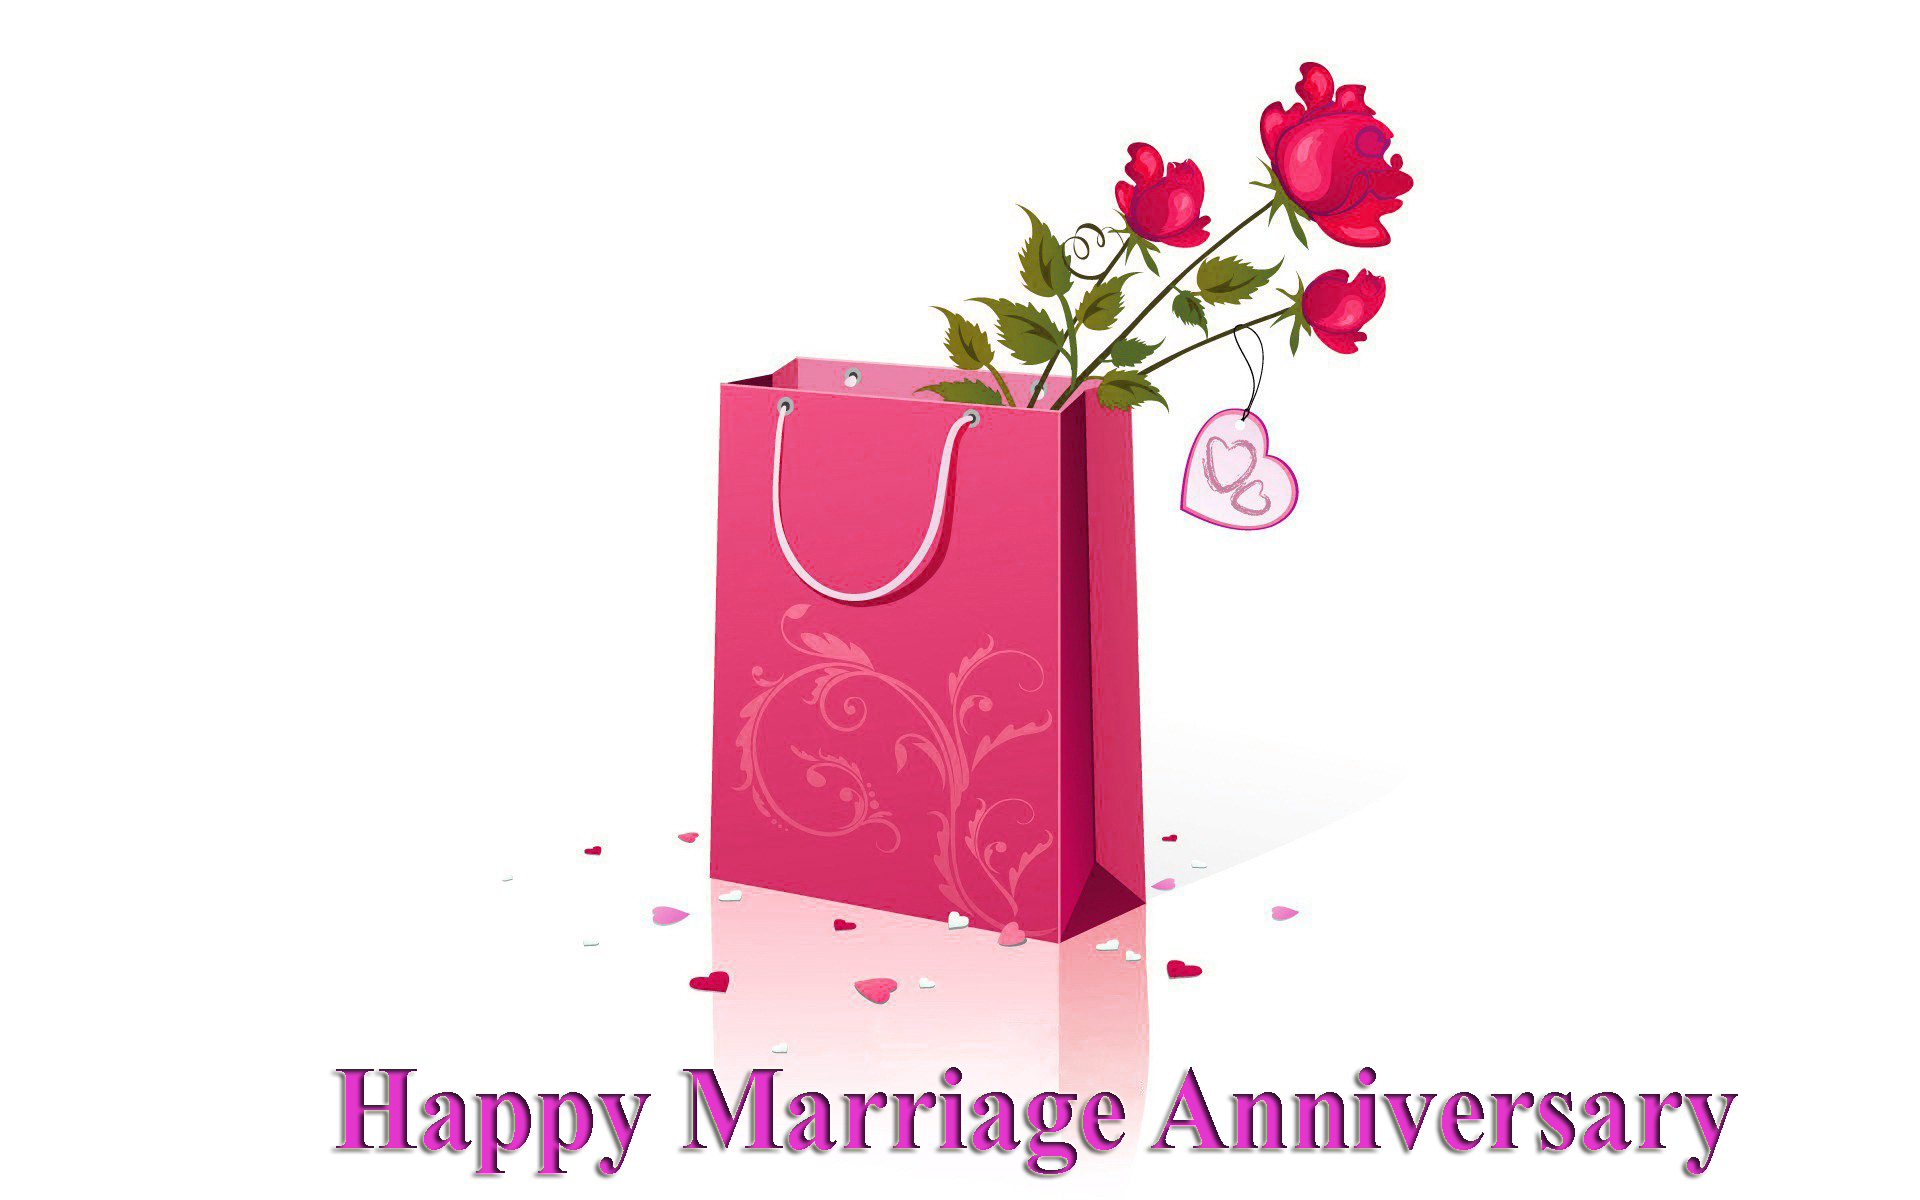 Happy Wedding Anniversary Wishes Images Cards Greetings Photos For ...